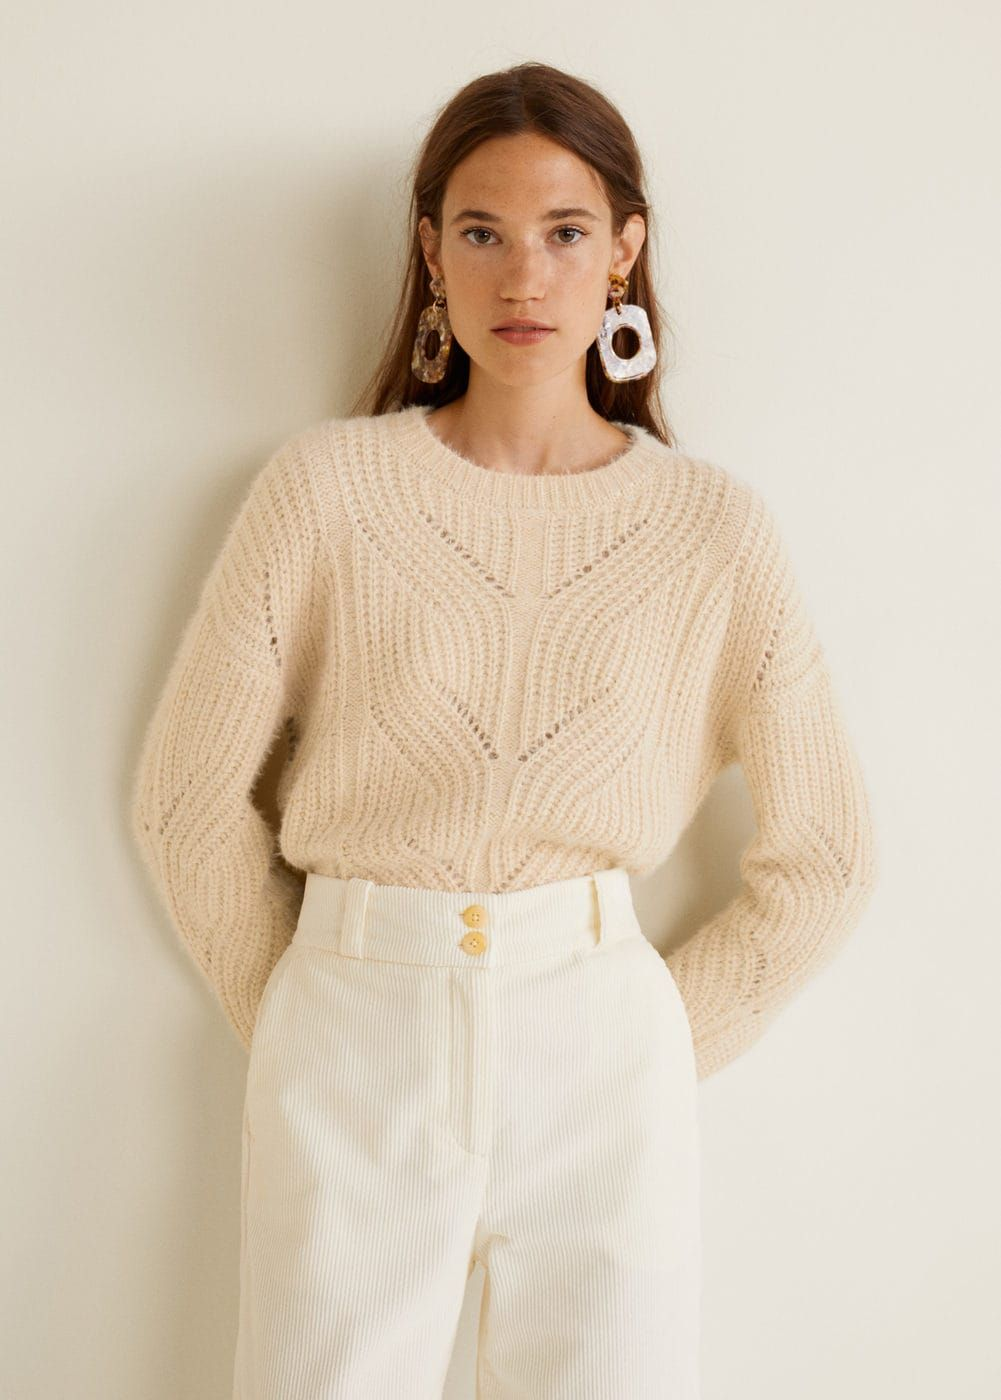 01fc8a0625 Thick knitted fabric Knitted braided fabric Textured fabric Openwork  details Rounded neck Long sleeve Cable knit finish